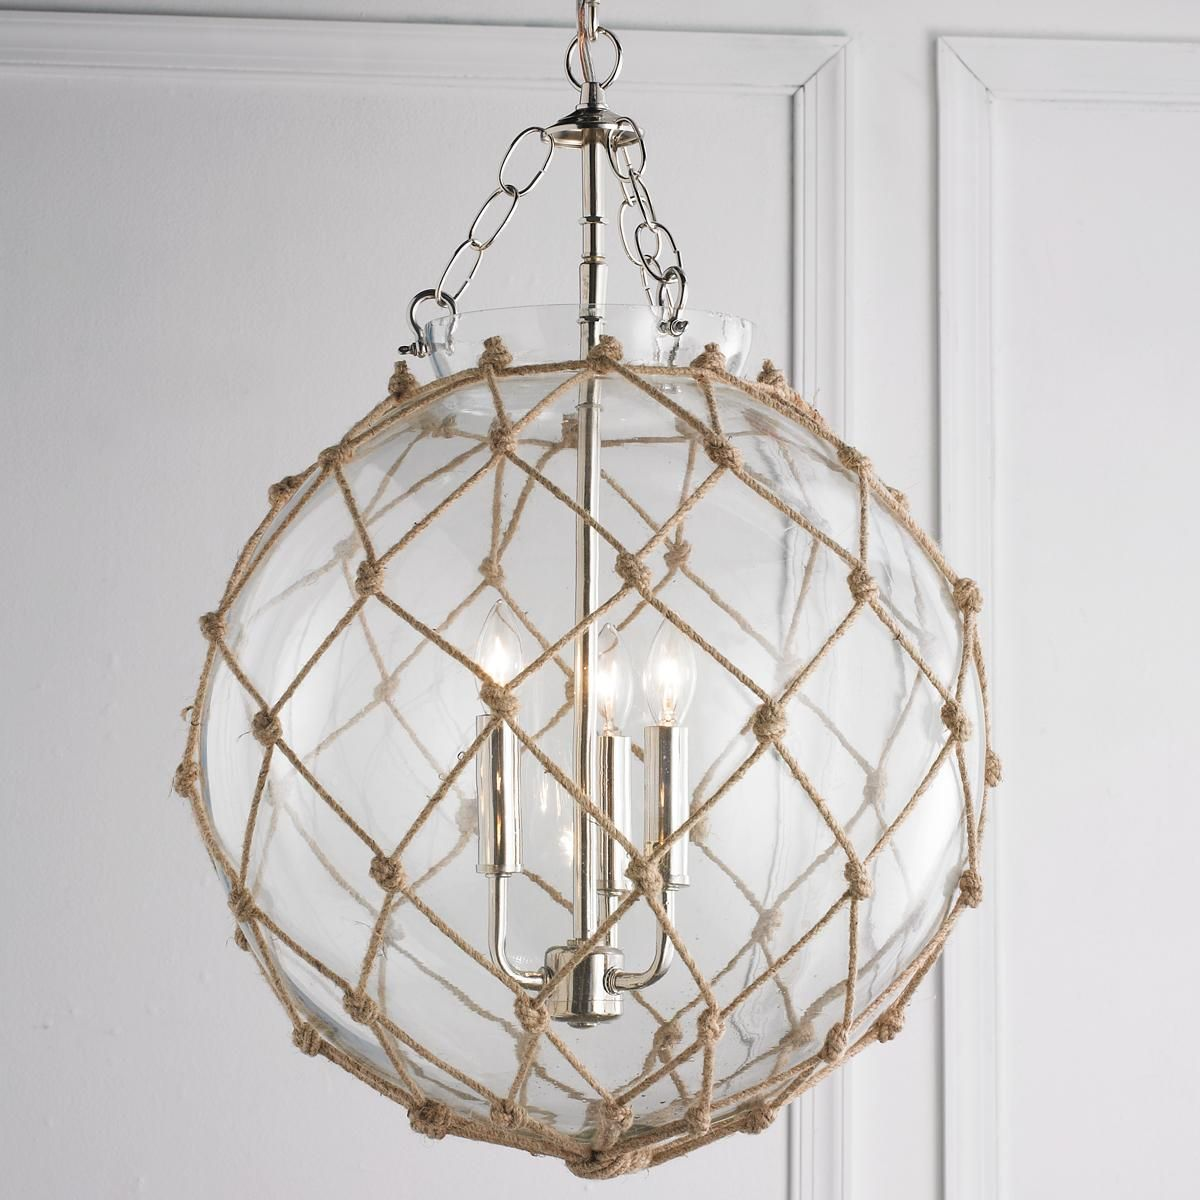 Rope Net Glass Sphere Chandelier